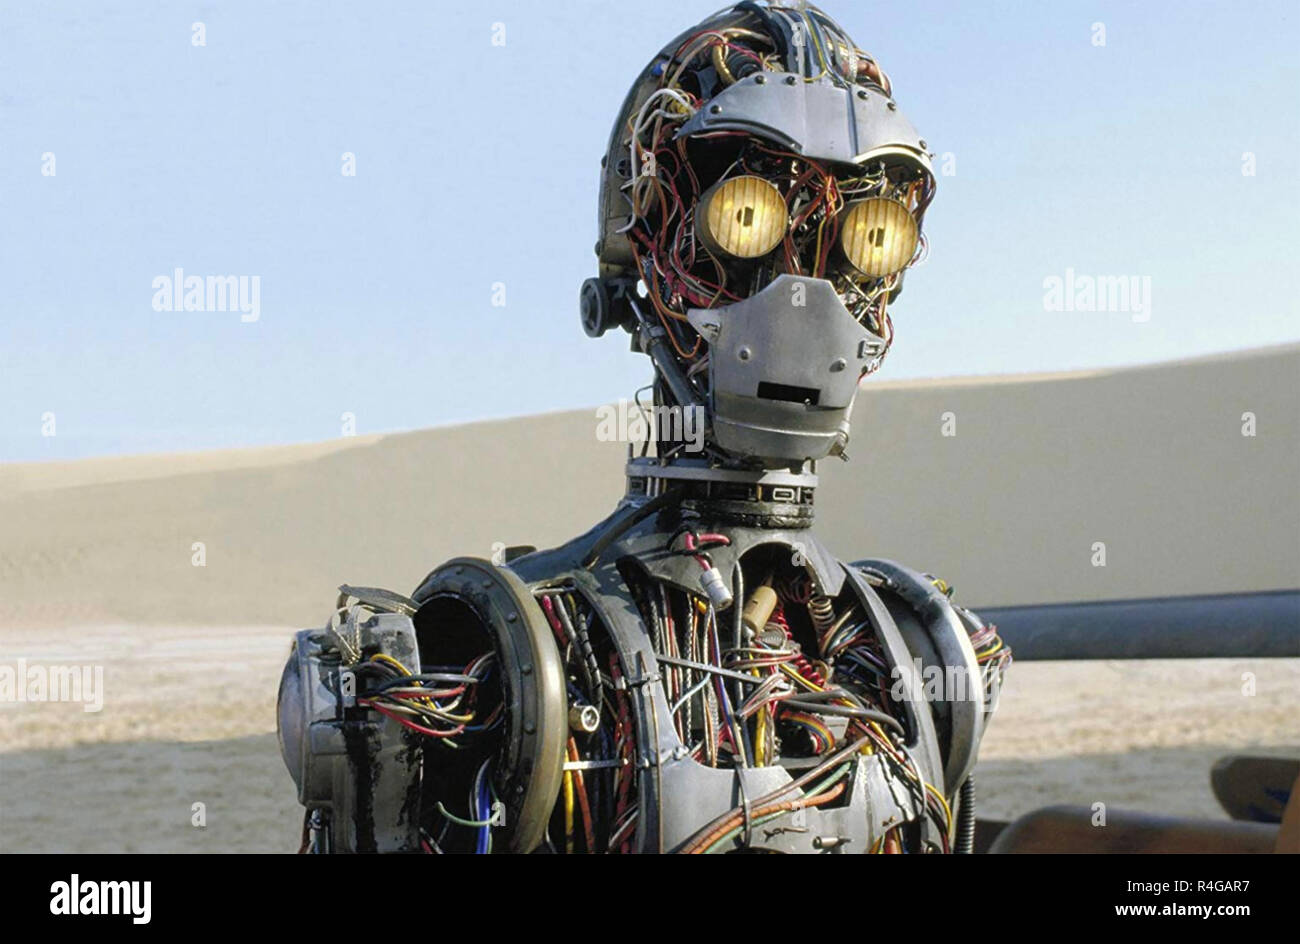 STAR WARS: EPISODE 1 - THE PHANTOM MENACE 1999 Lucasfilm production with Anthony Daniels voicing C-3PO - Stock Image